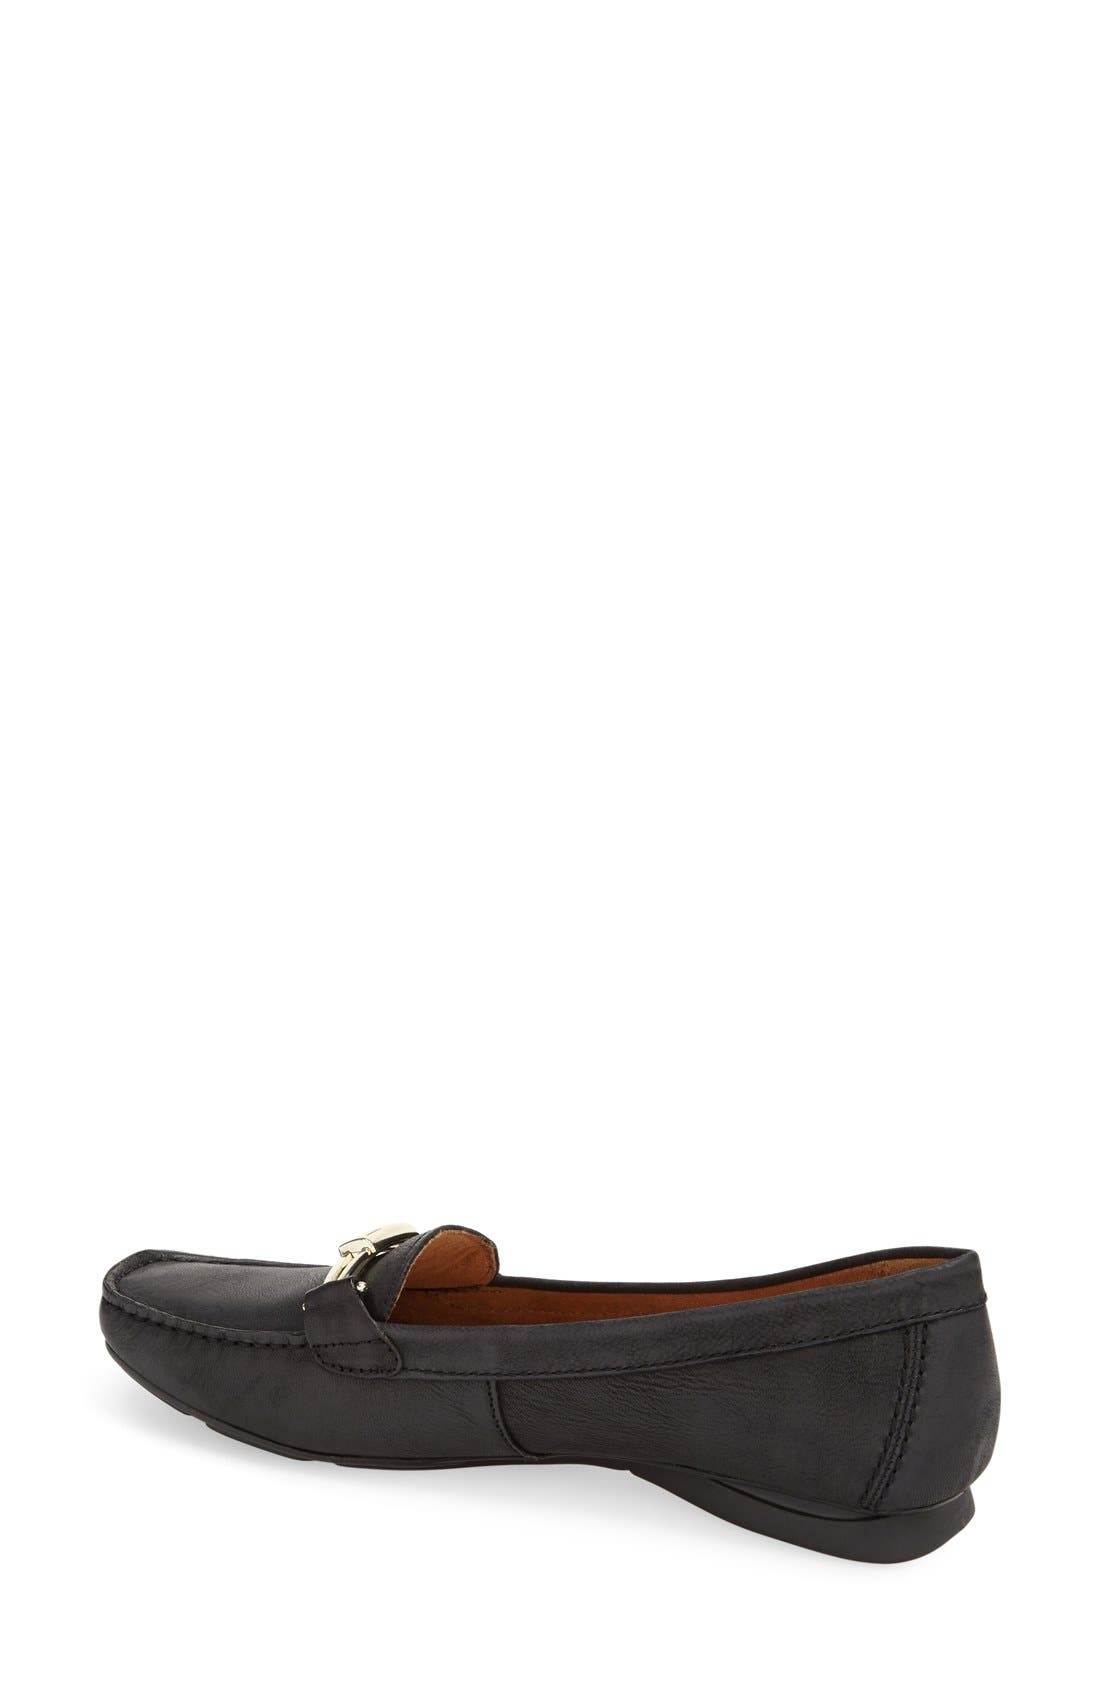 'Saturday' Loafer,                             Alternate thumbnail 8, color,